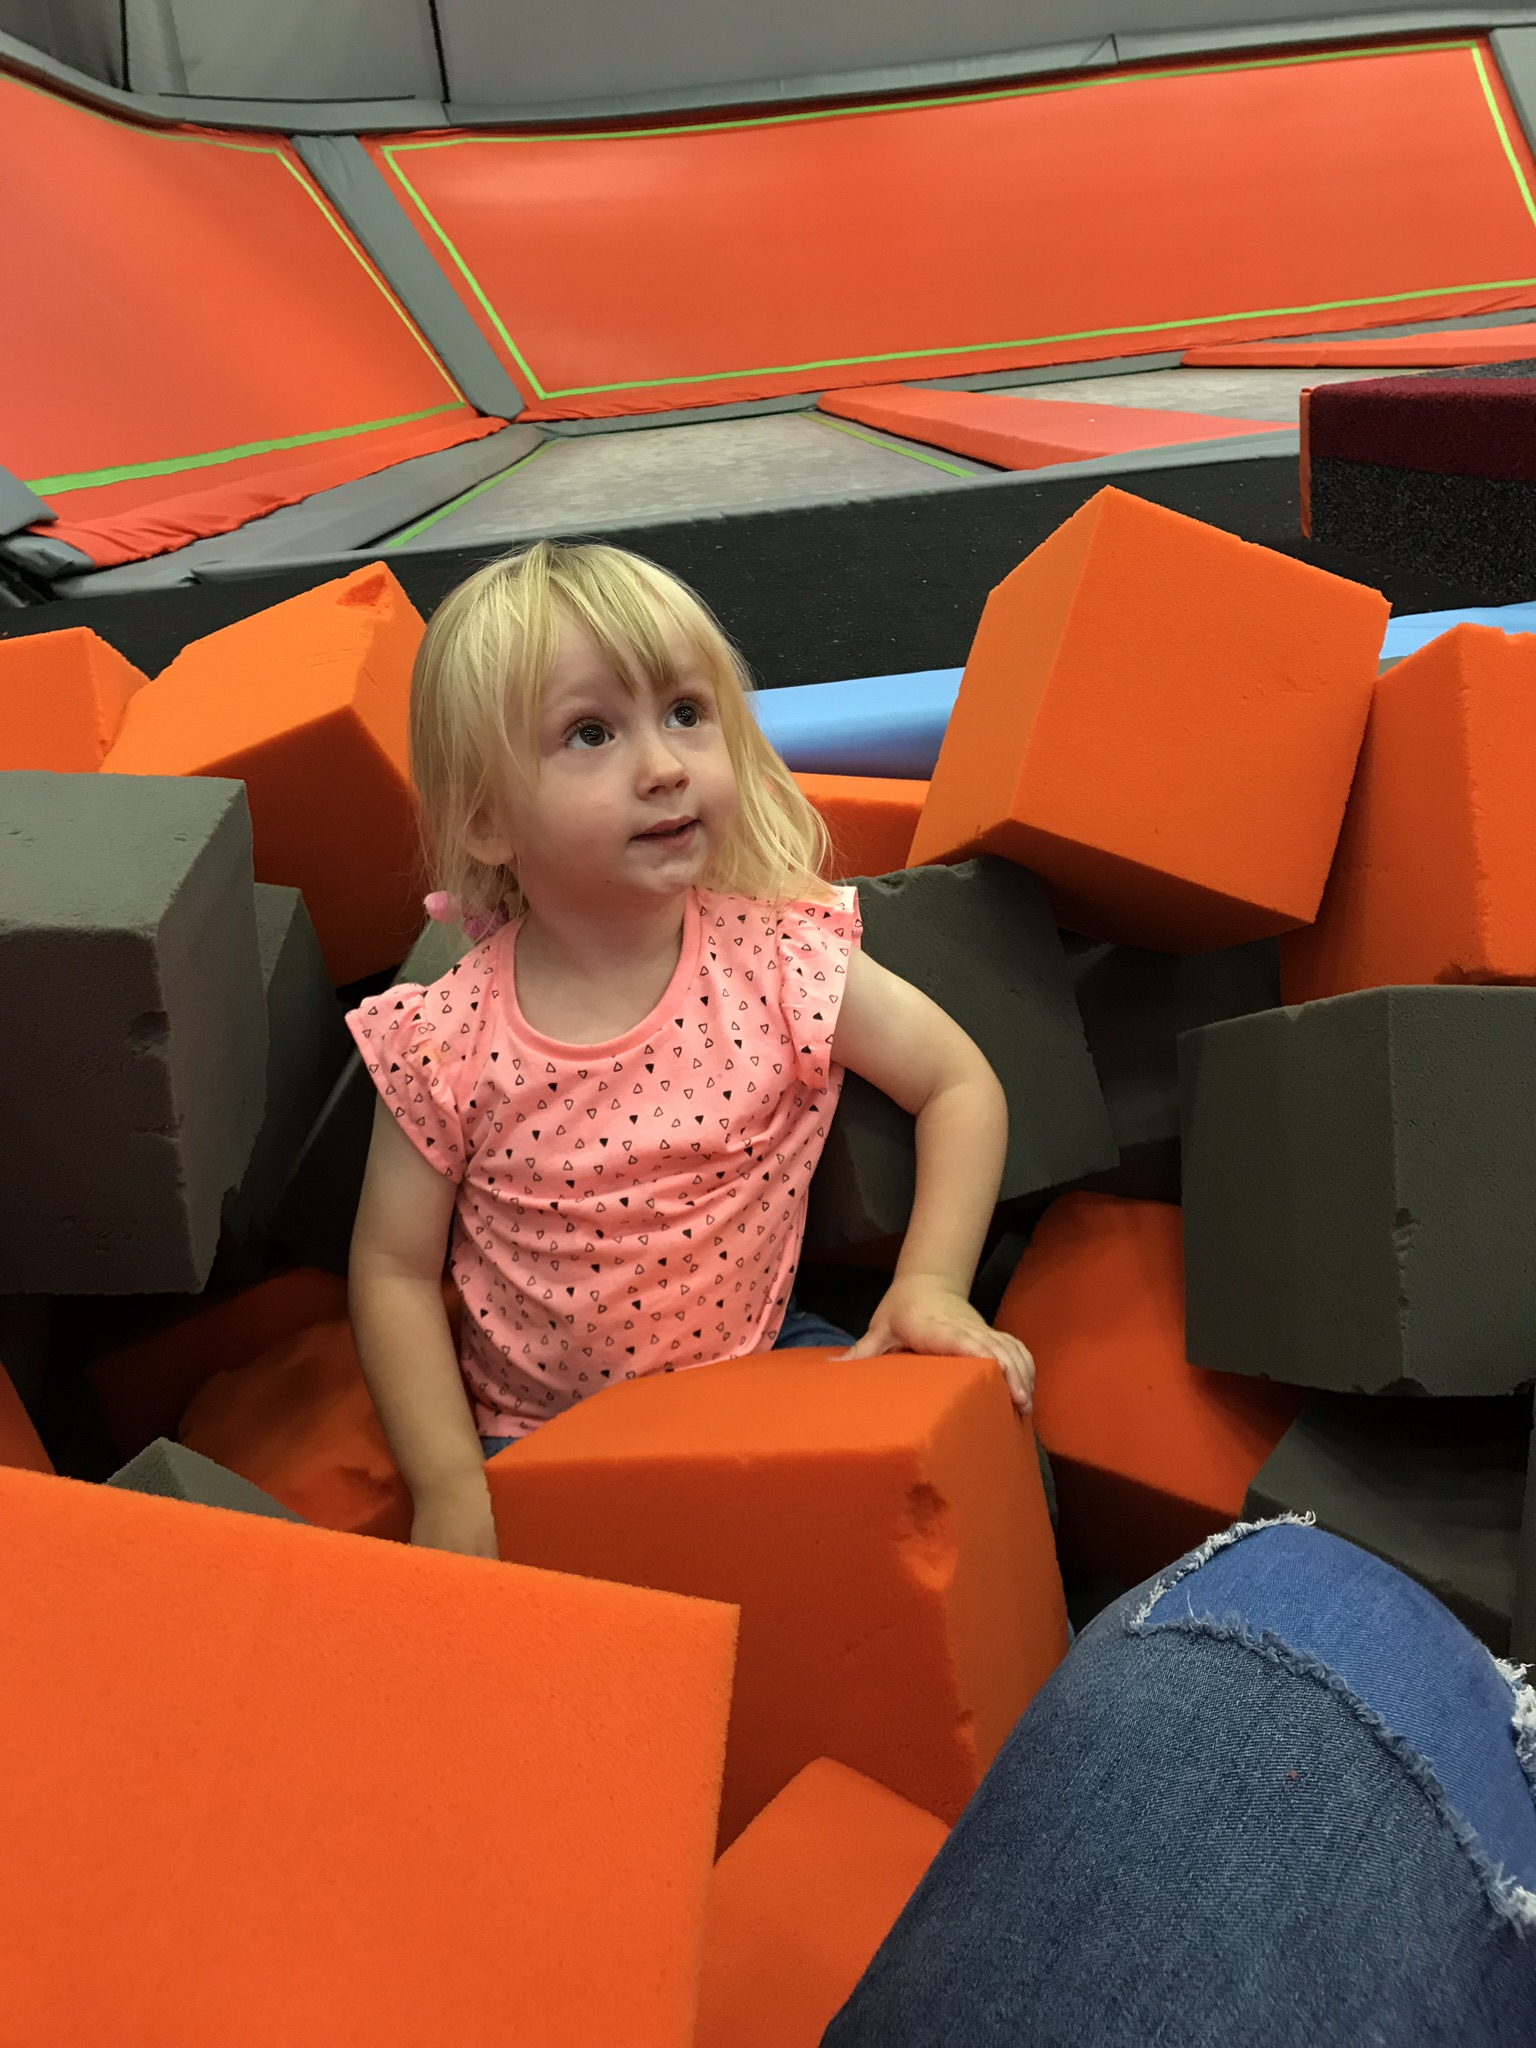 cece in the foam pit at the trampoline park